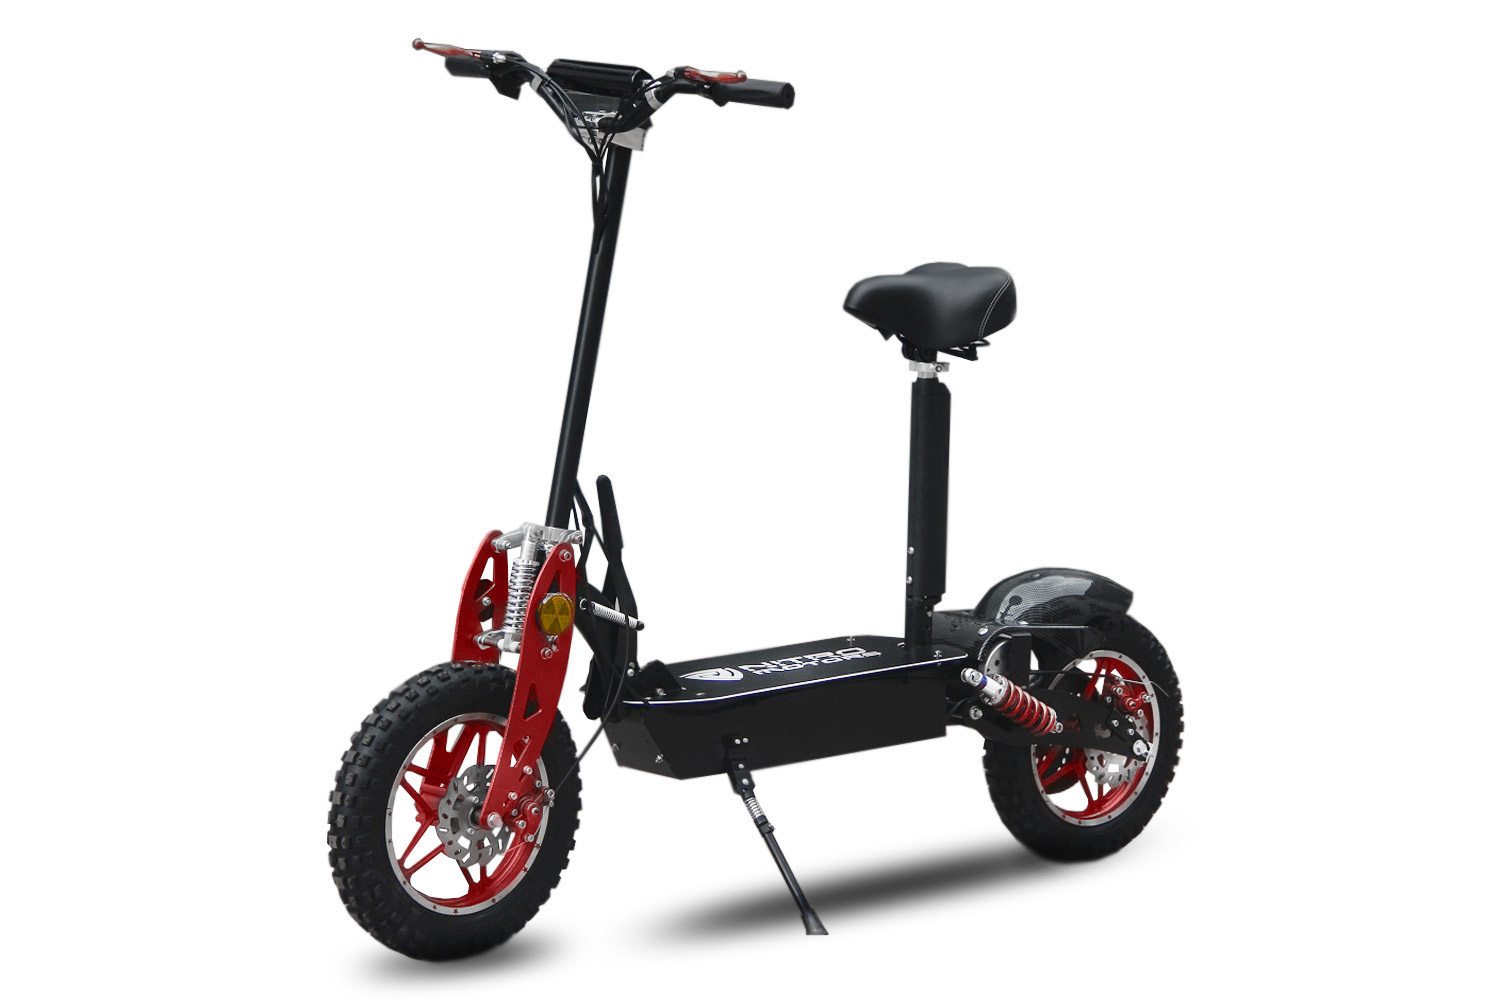 nitro motor elektro scooter 10 zoll reifen 48 volt 1000 watt motocross kindermotorrad pit dirt. Black Bedroom Furniture Sets. Home Design Ideas